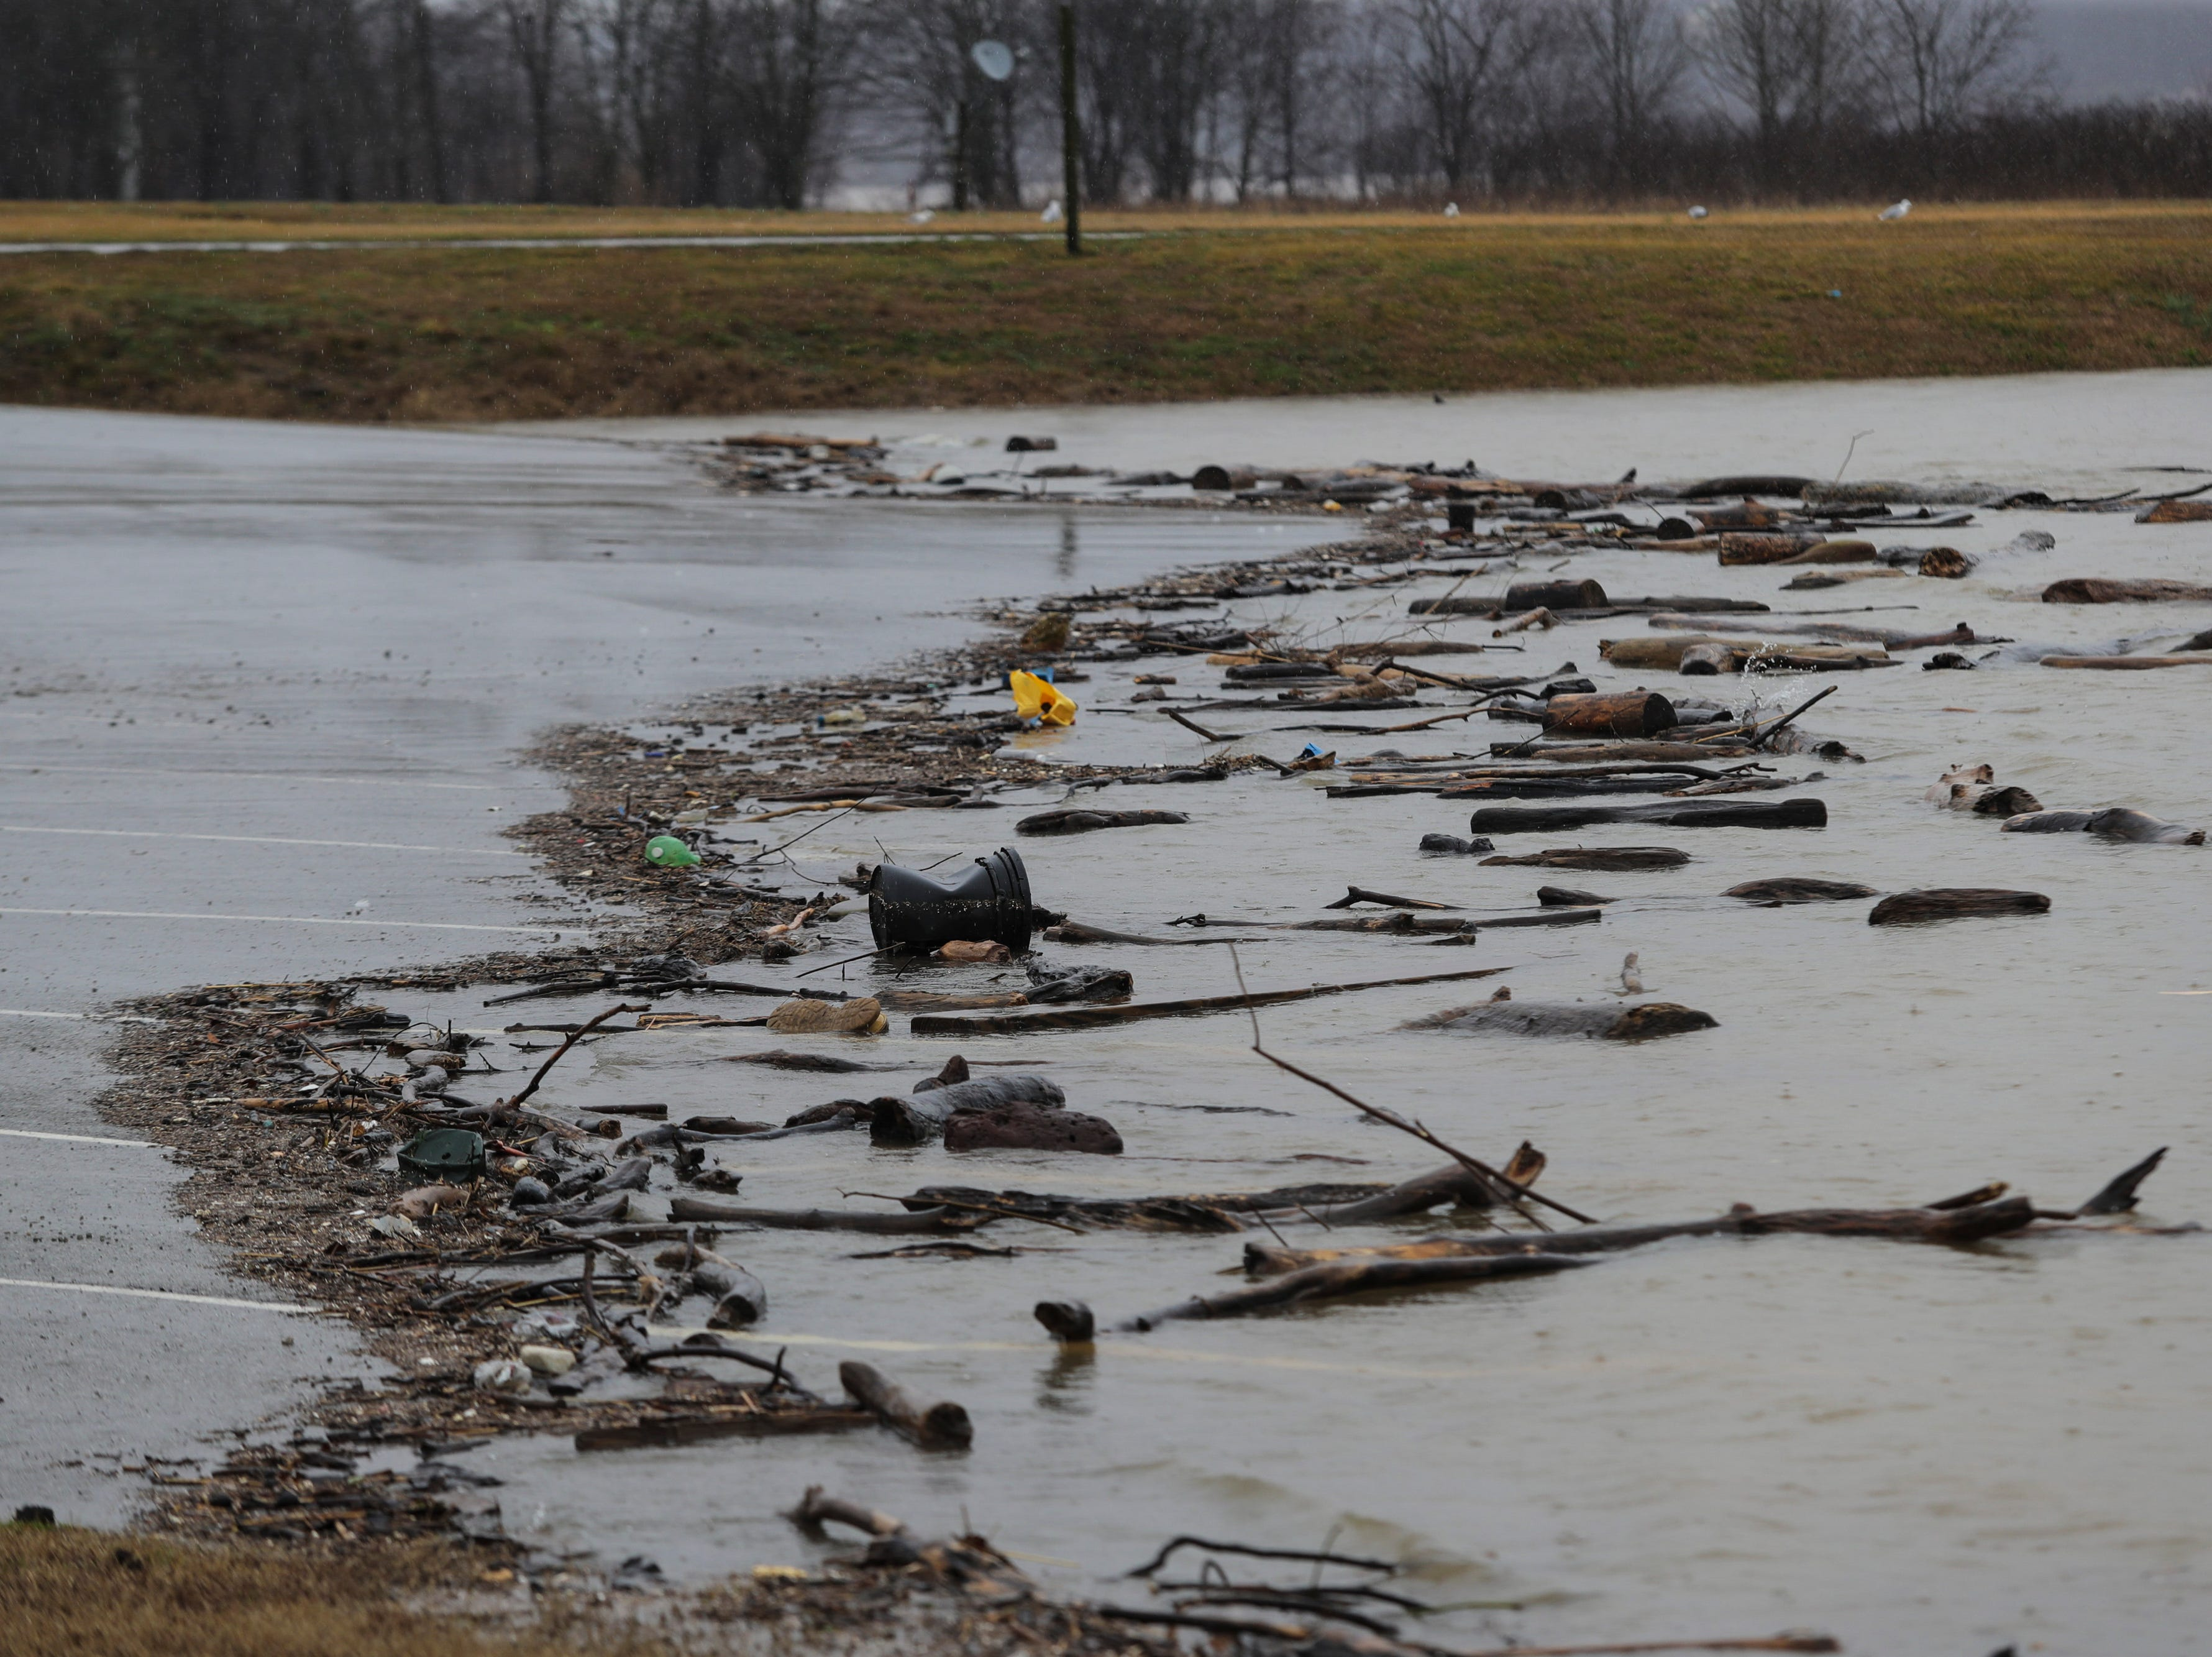 Debris and high waters move in to parking lots in Utica, Ind. as Ohio River water levels begin to rise. Feb. 11, 2019